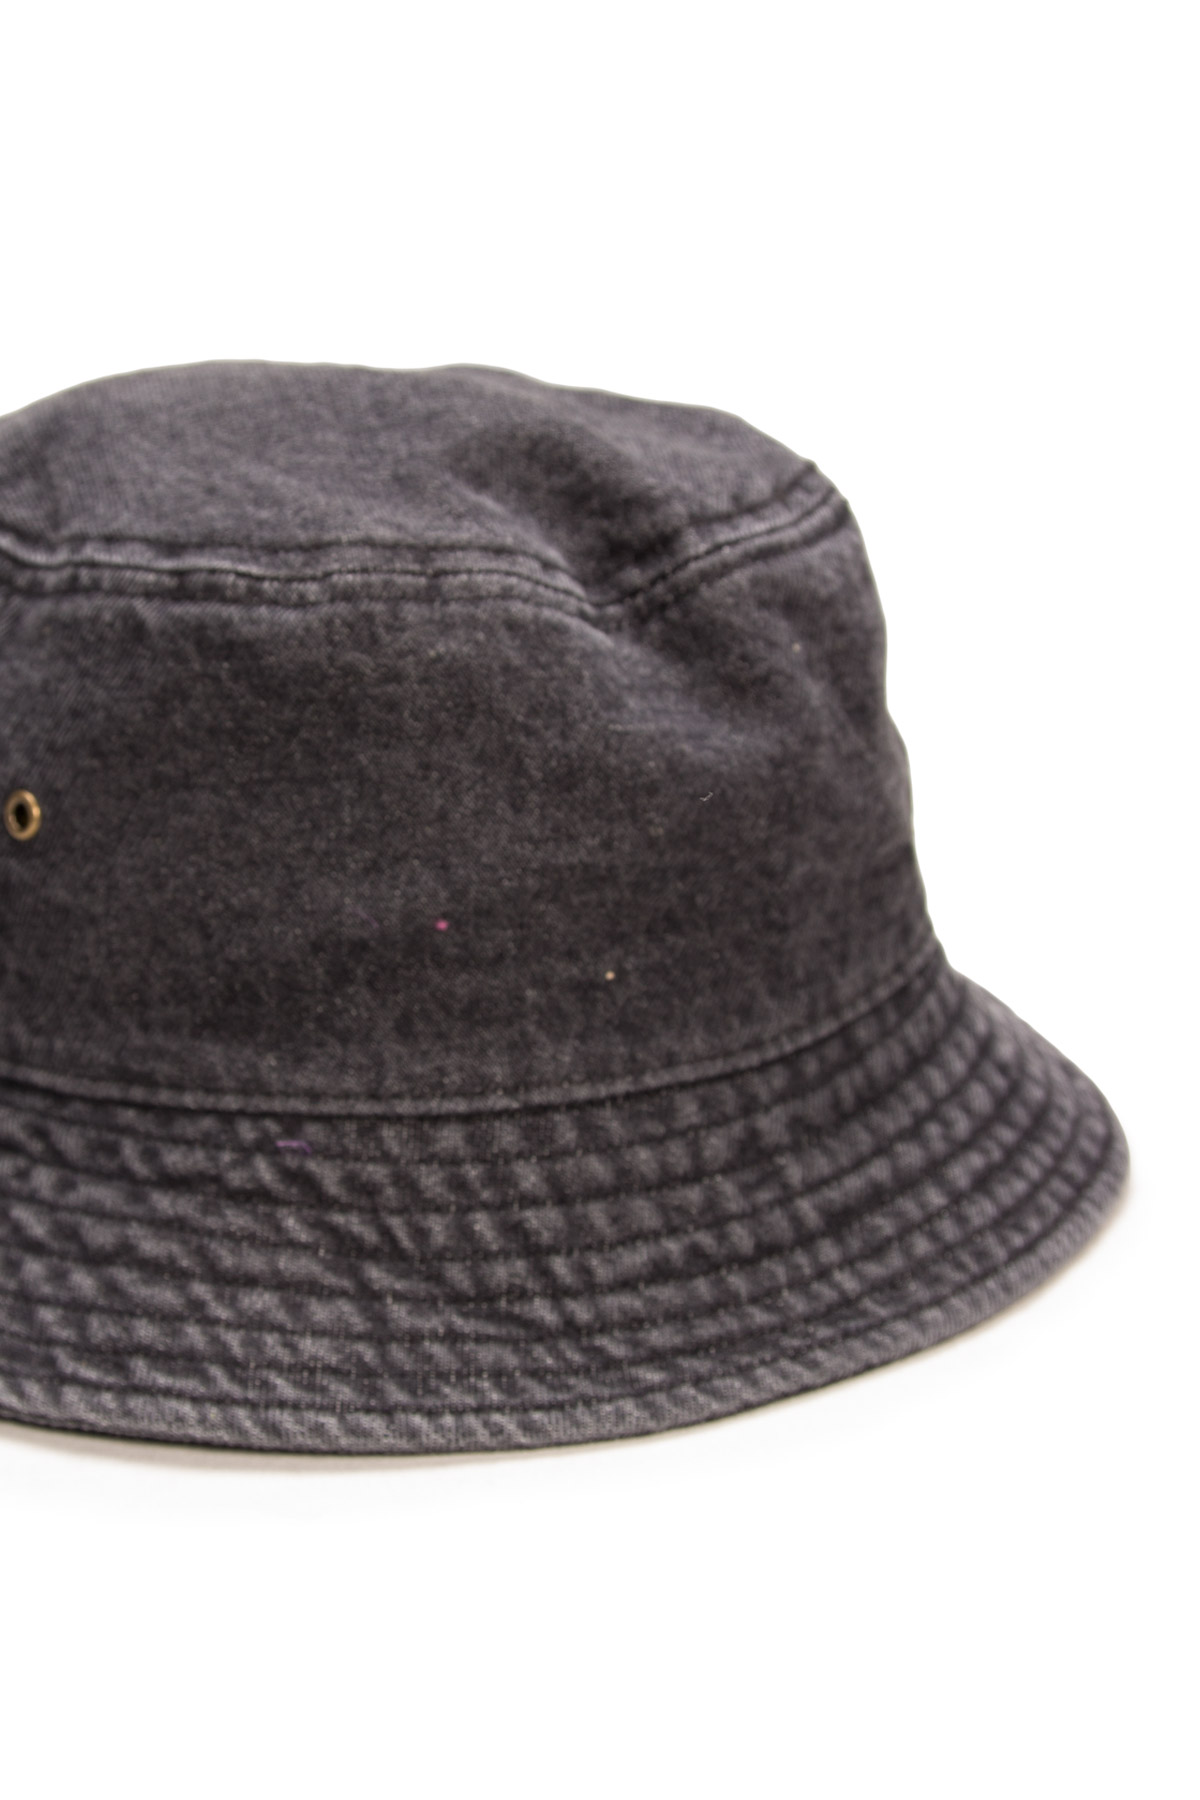 grey denim bucket hat